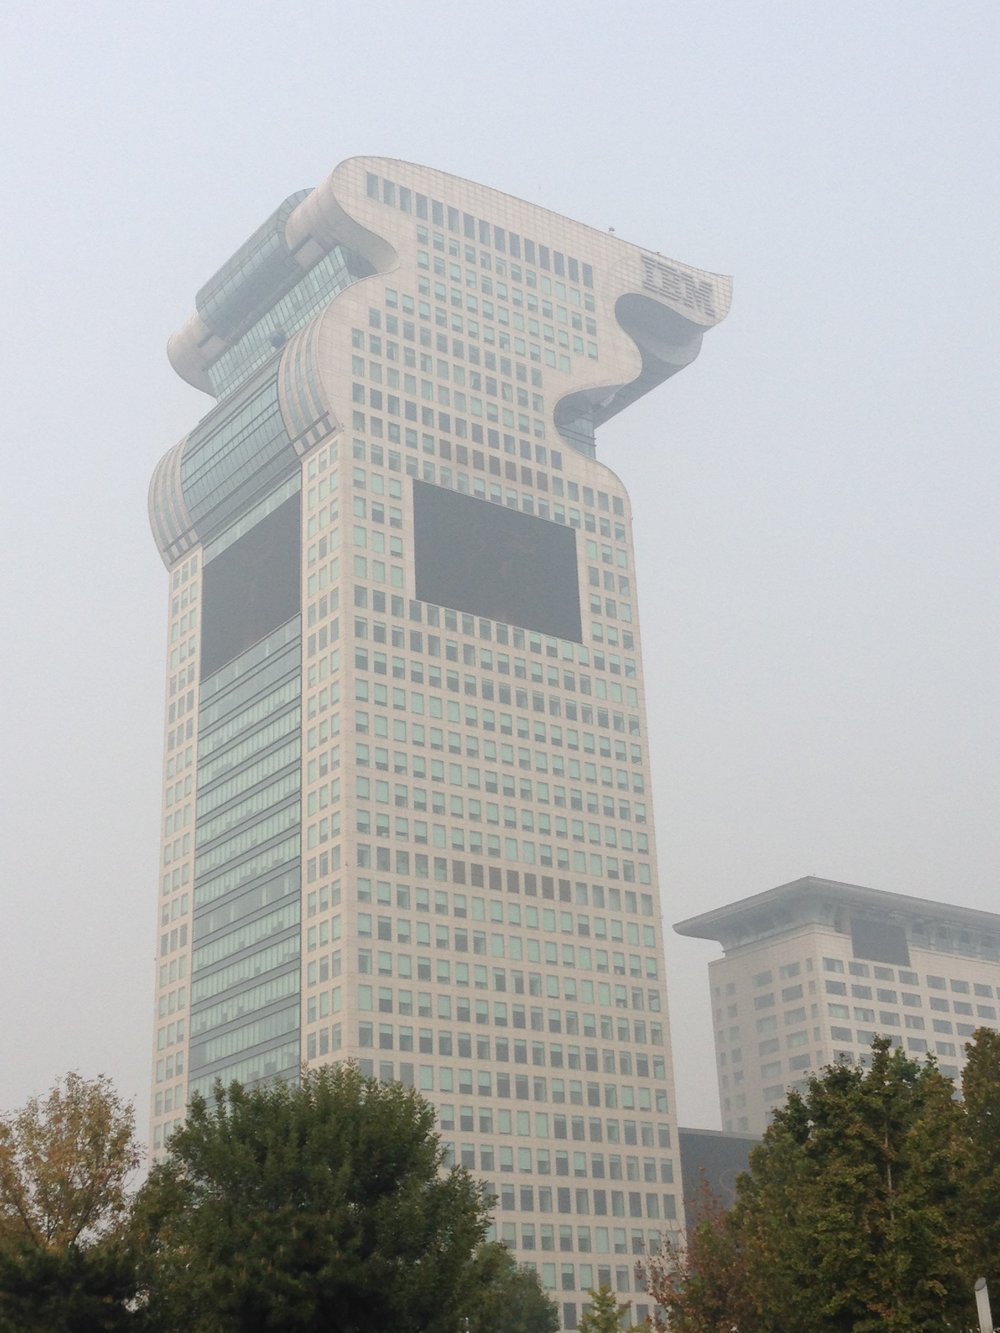 We passed the IBM building on our way out of the city. You can see the pollution haze.